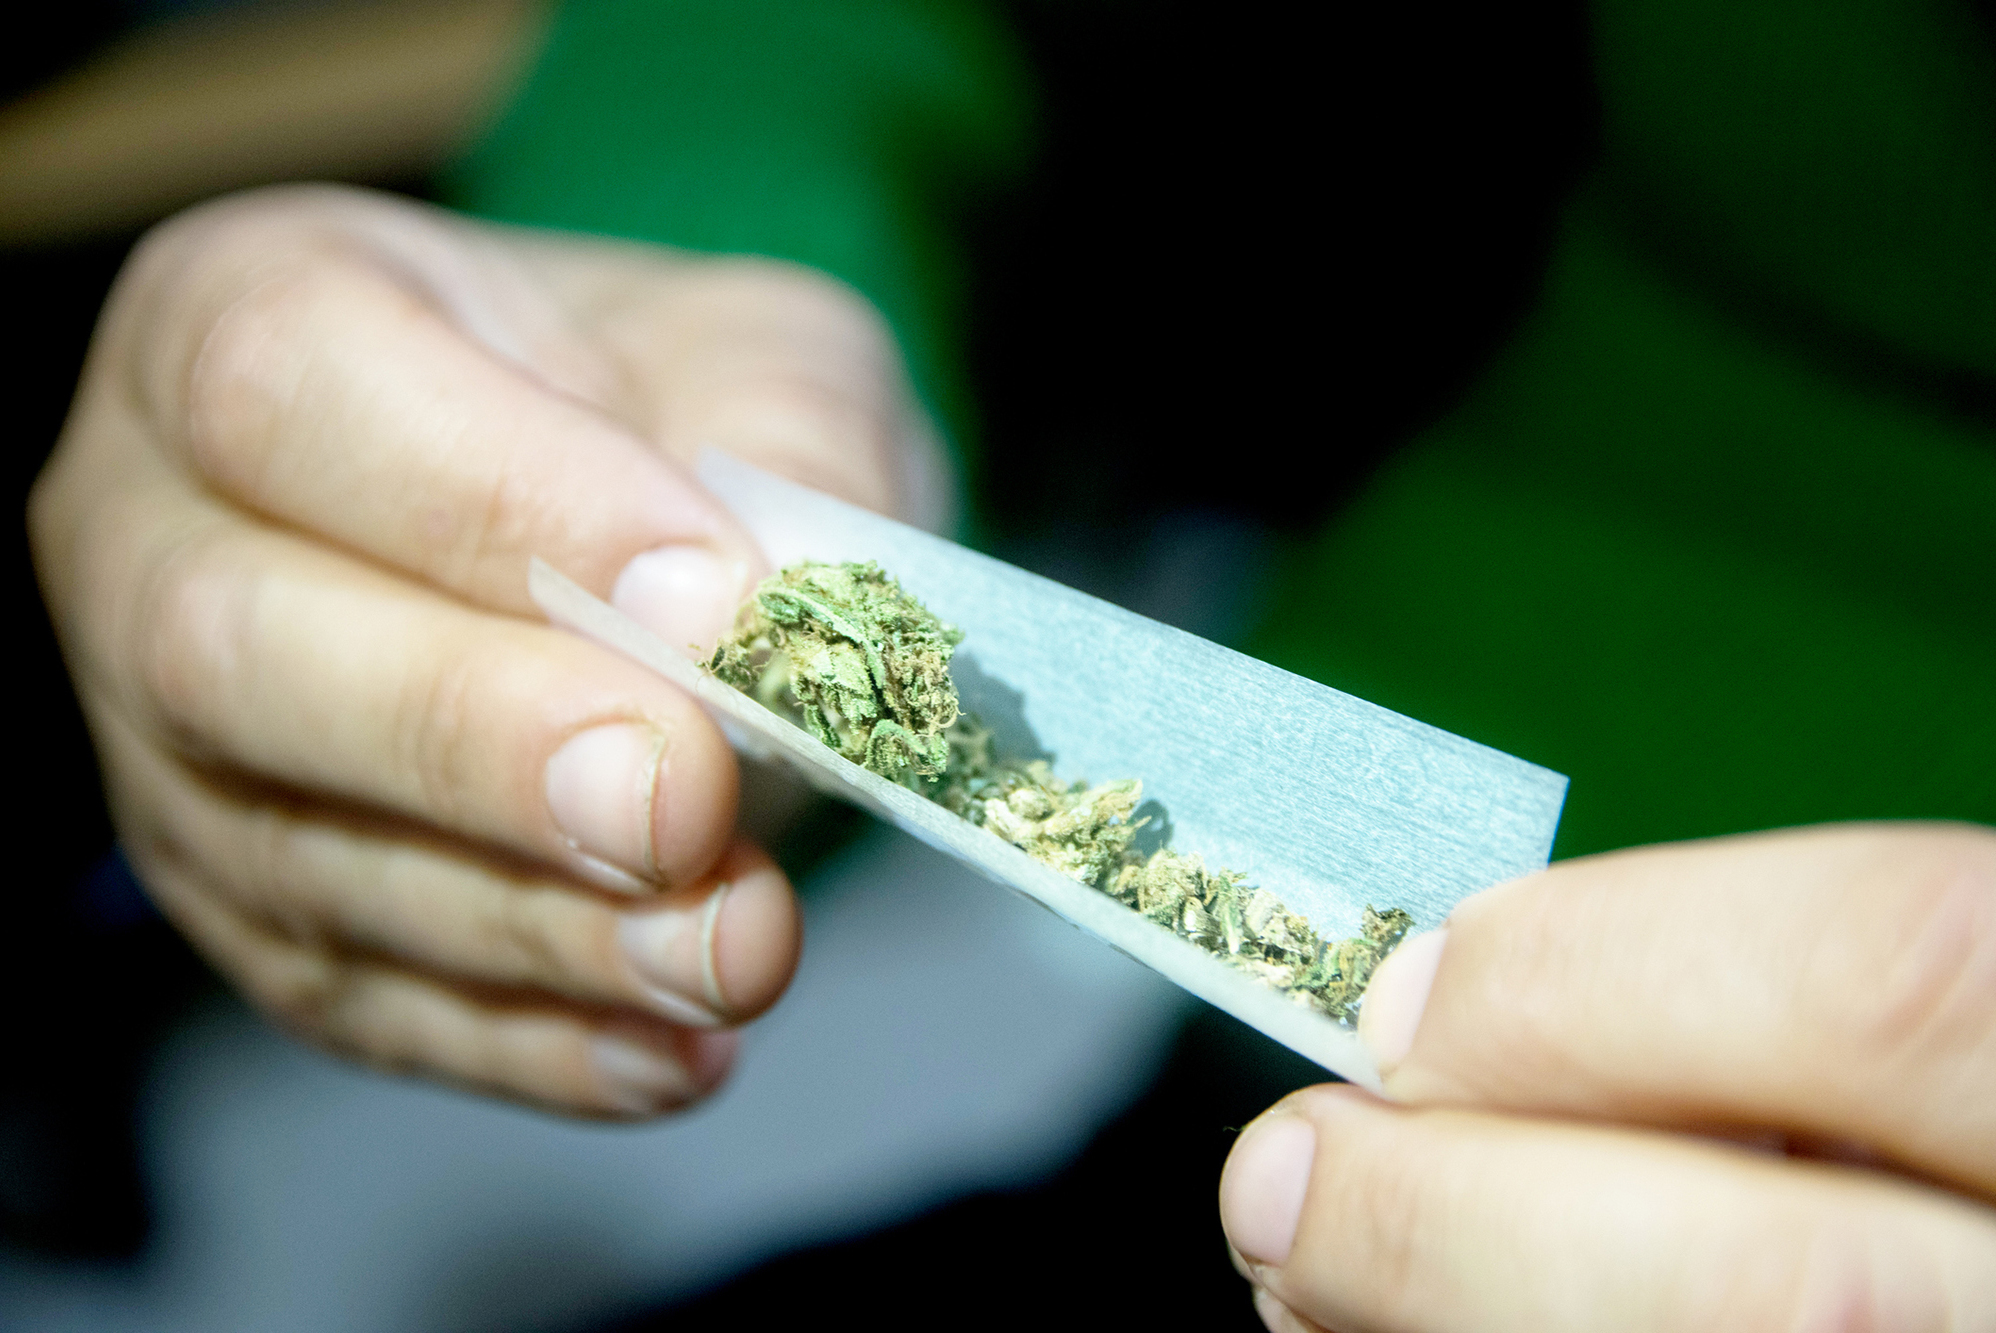 VA Clears The Air On Doctors Talking To Veterans About Marijuana Use